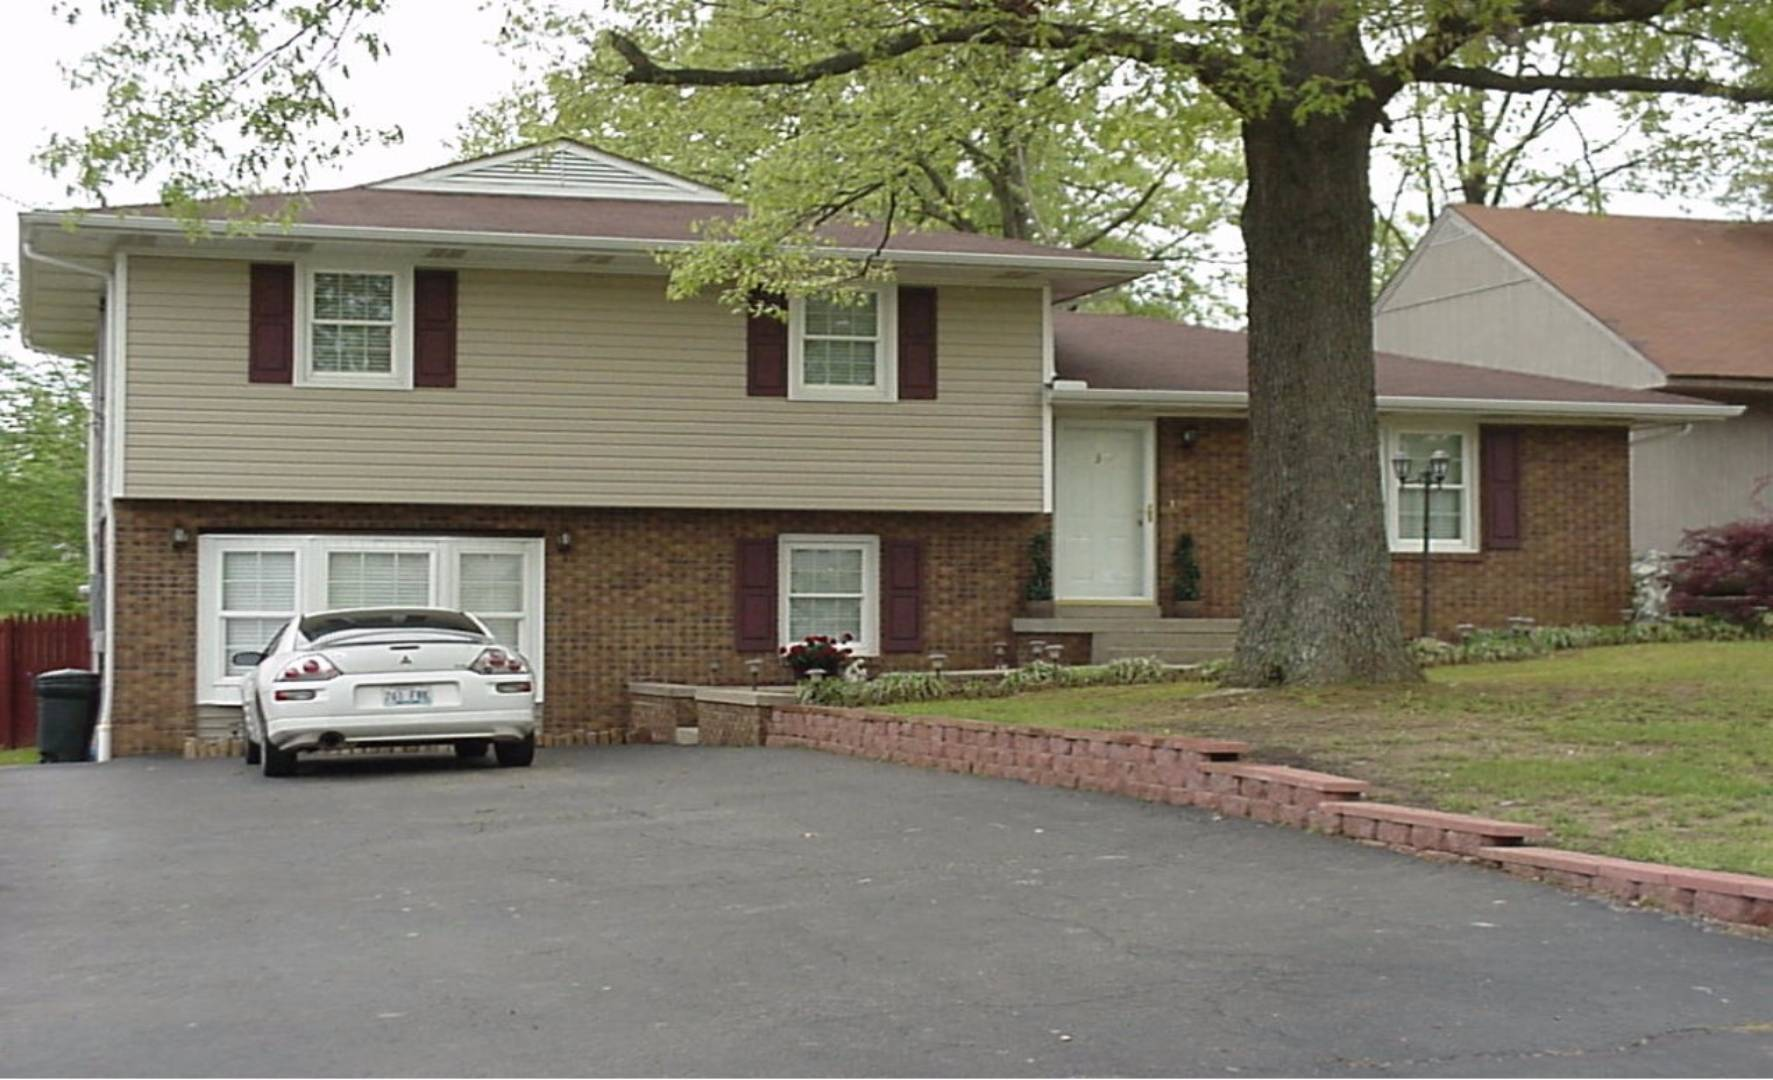 1306 Minton Ln. Hartford KY 42347 (For Sale Maddox5Star Listing #10418684) & 1306 Minton Ln. Hartford KY 42347 (For Sale Maddox5Star Listing ...